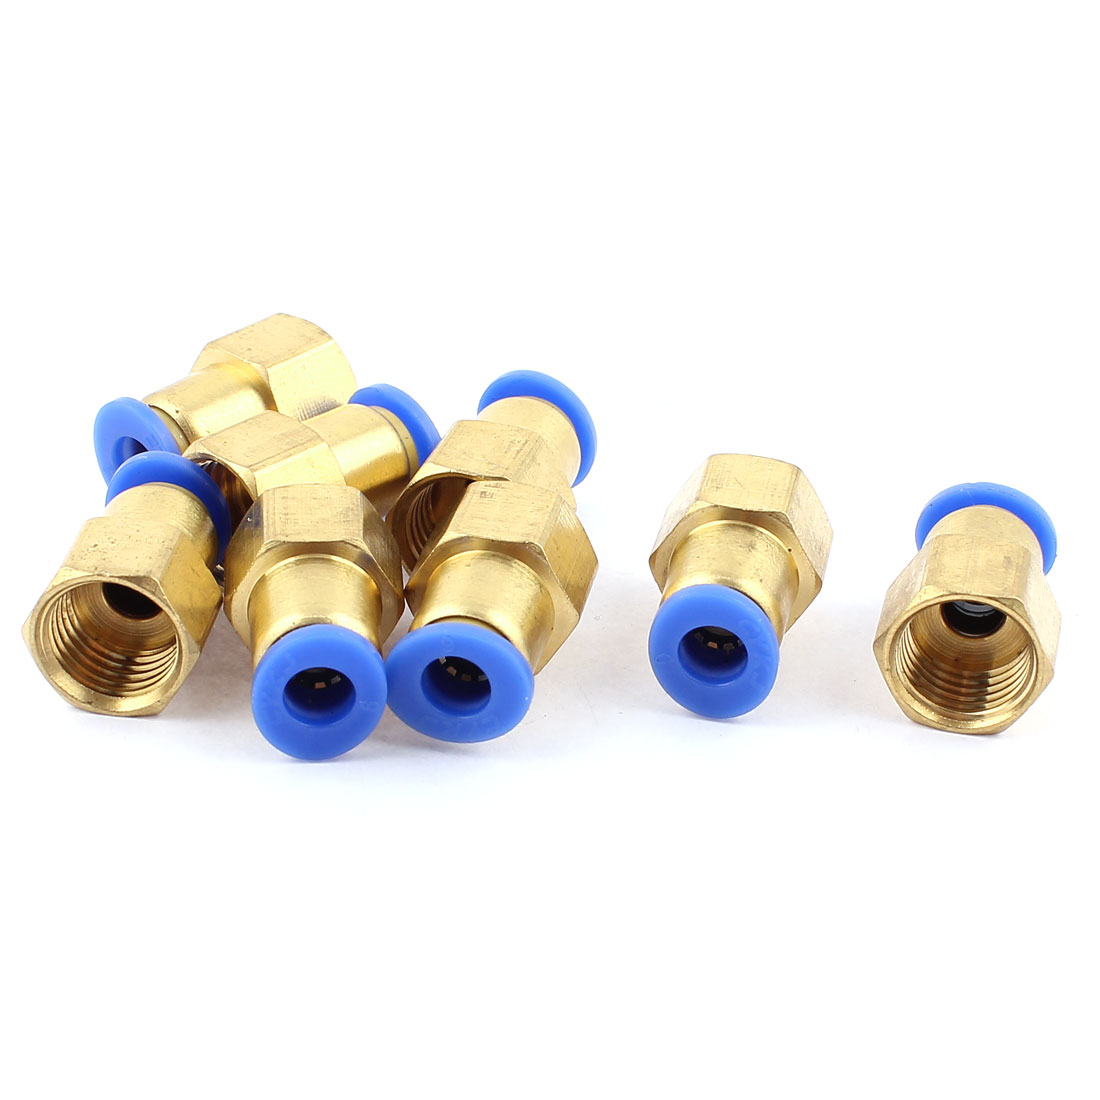 8pcs 1/4 BSP Thread to 6mm Push in Pneumatic Air Quick Connect Tube Fitting Coupler